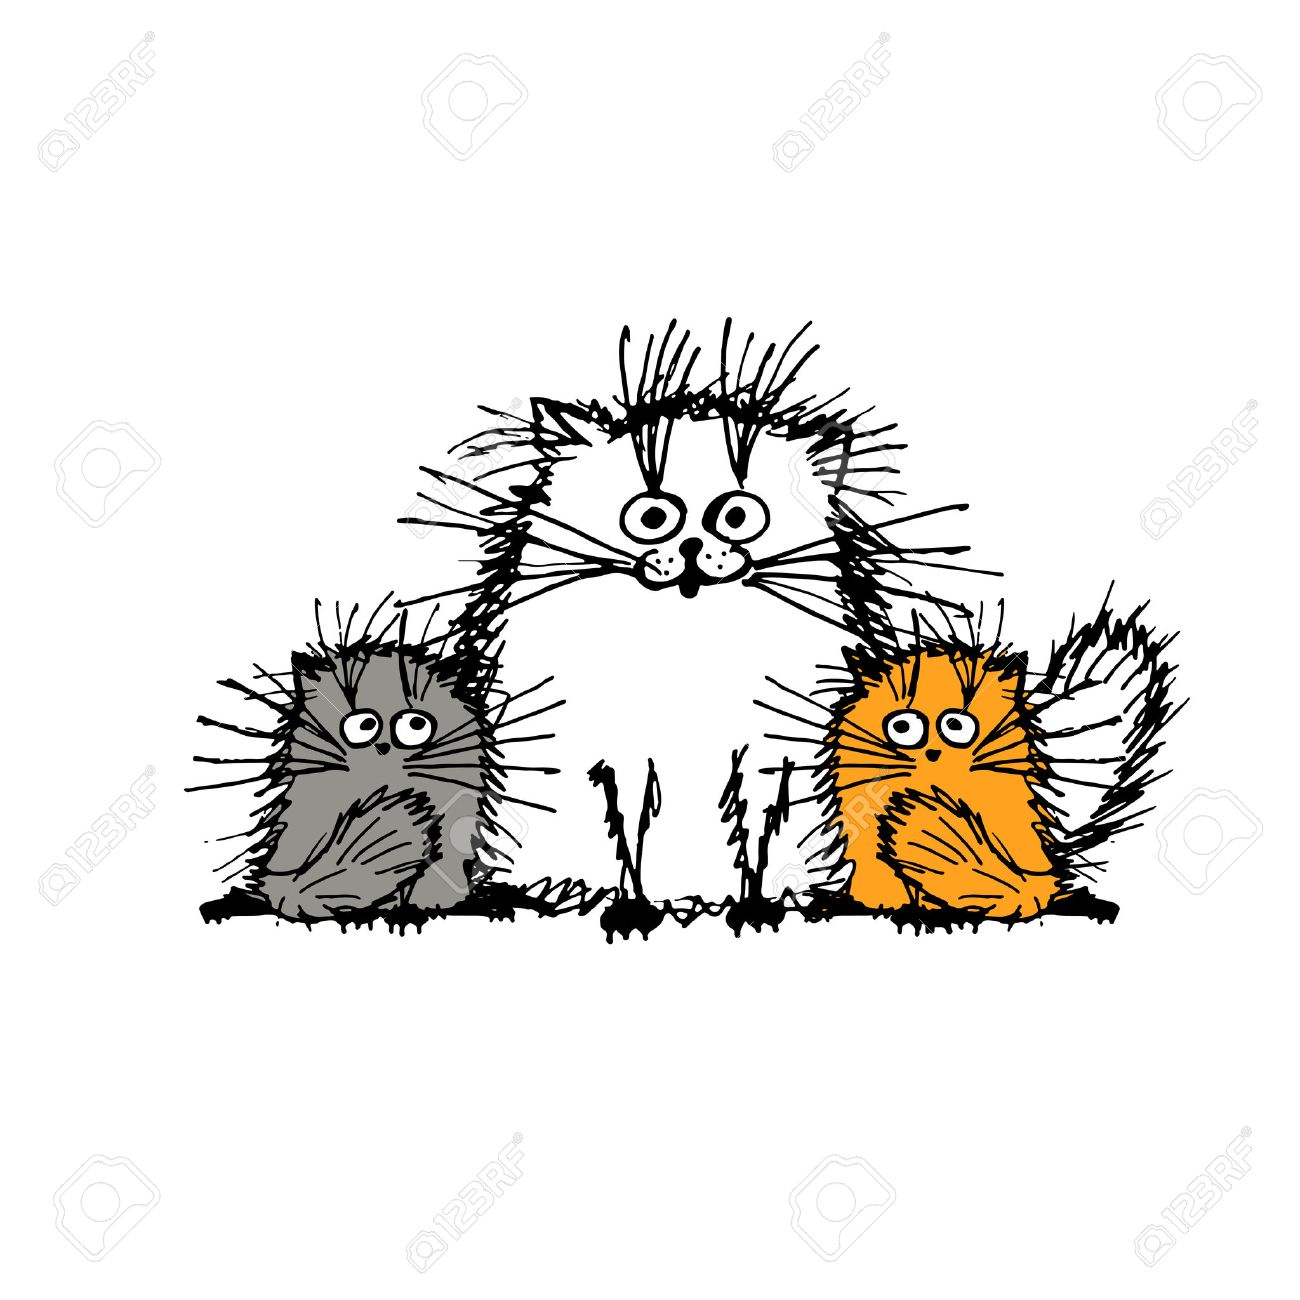 Fluffy cats family, sketch for your design. Vector illustration Stock Vector - 51823975